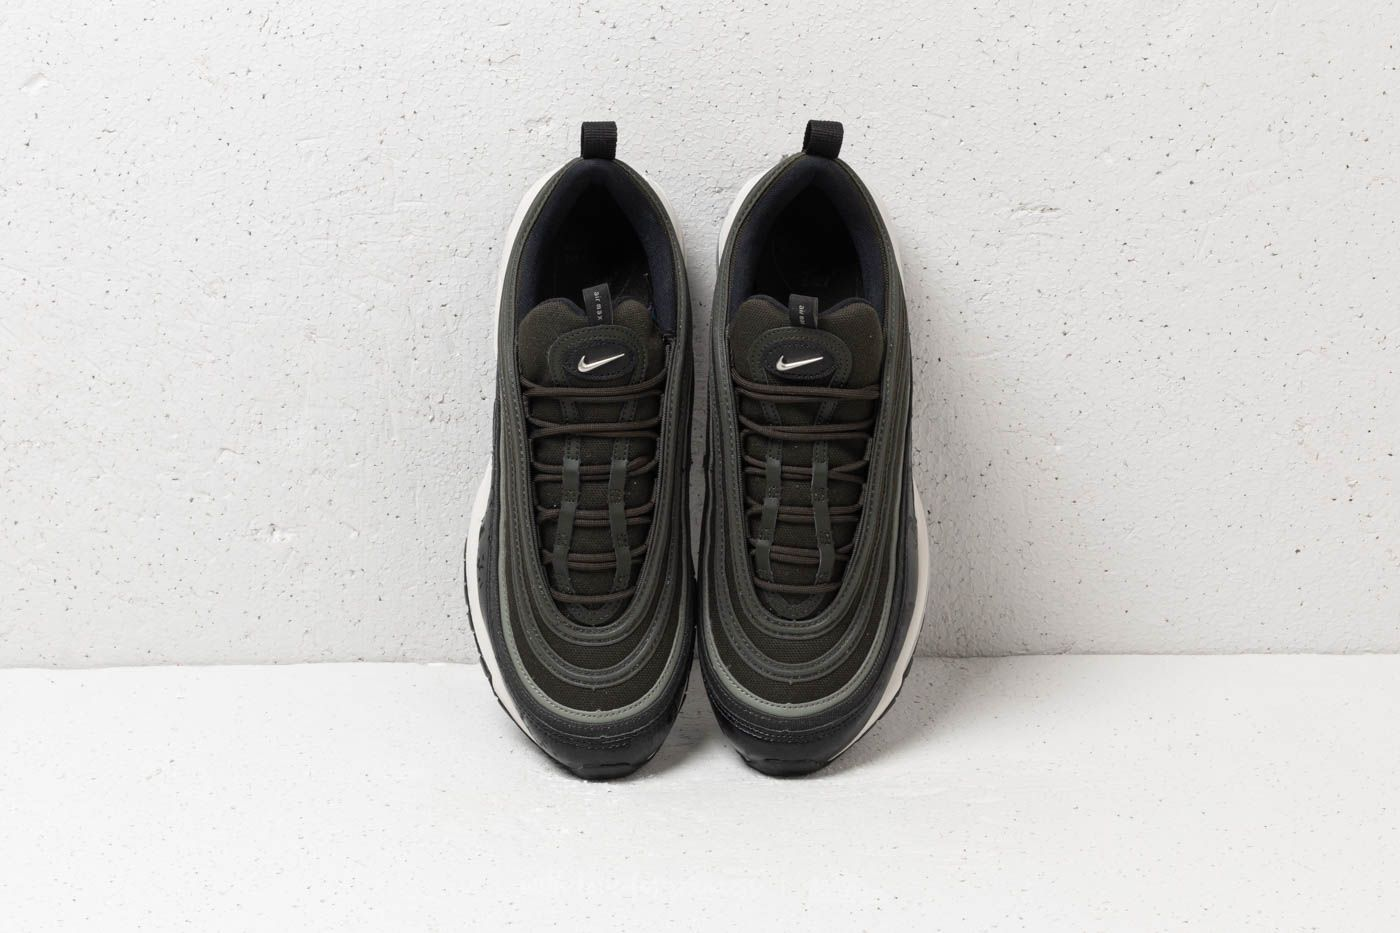 Nike Wmns Air Max 97 Premium Sequoia Dark Stucco Light Bone